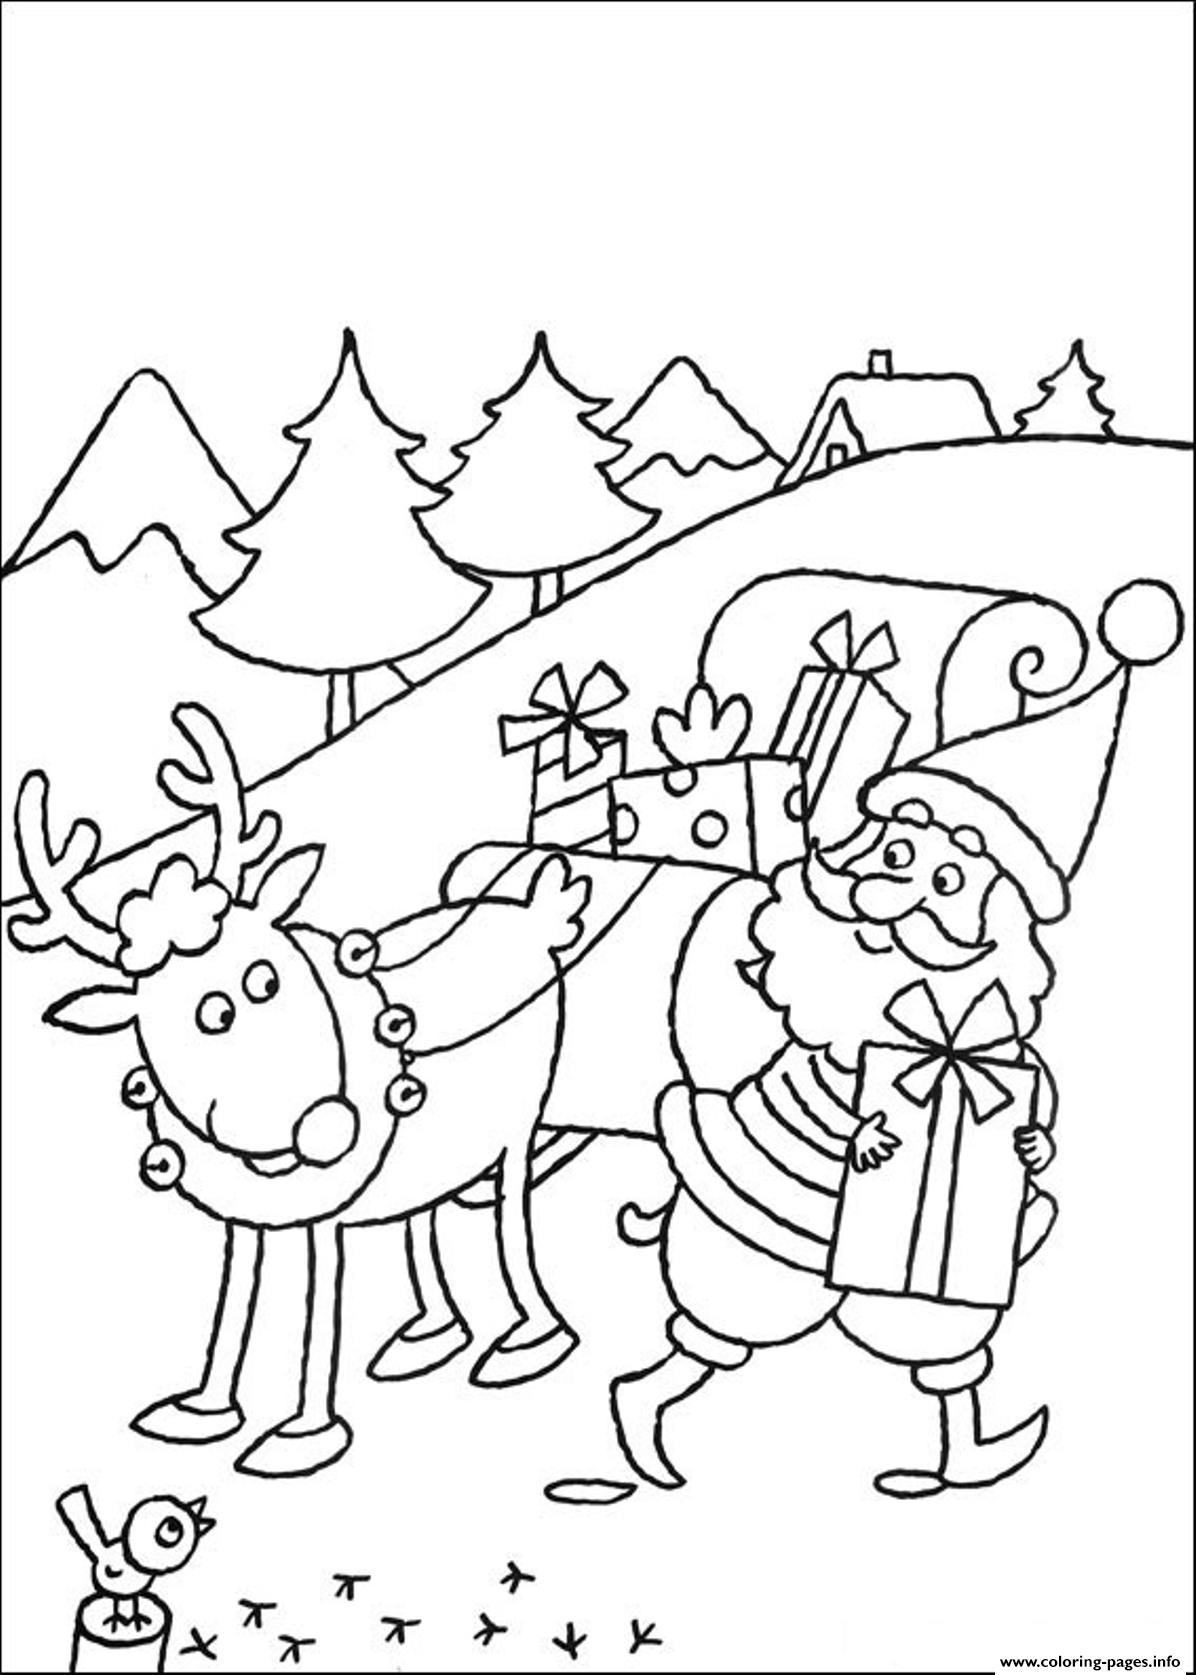 santa and reindeer coloring pages printable santa claus and the red nose rudolph reindeer coloring pages reindeer coloring and santa pages printable